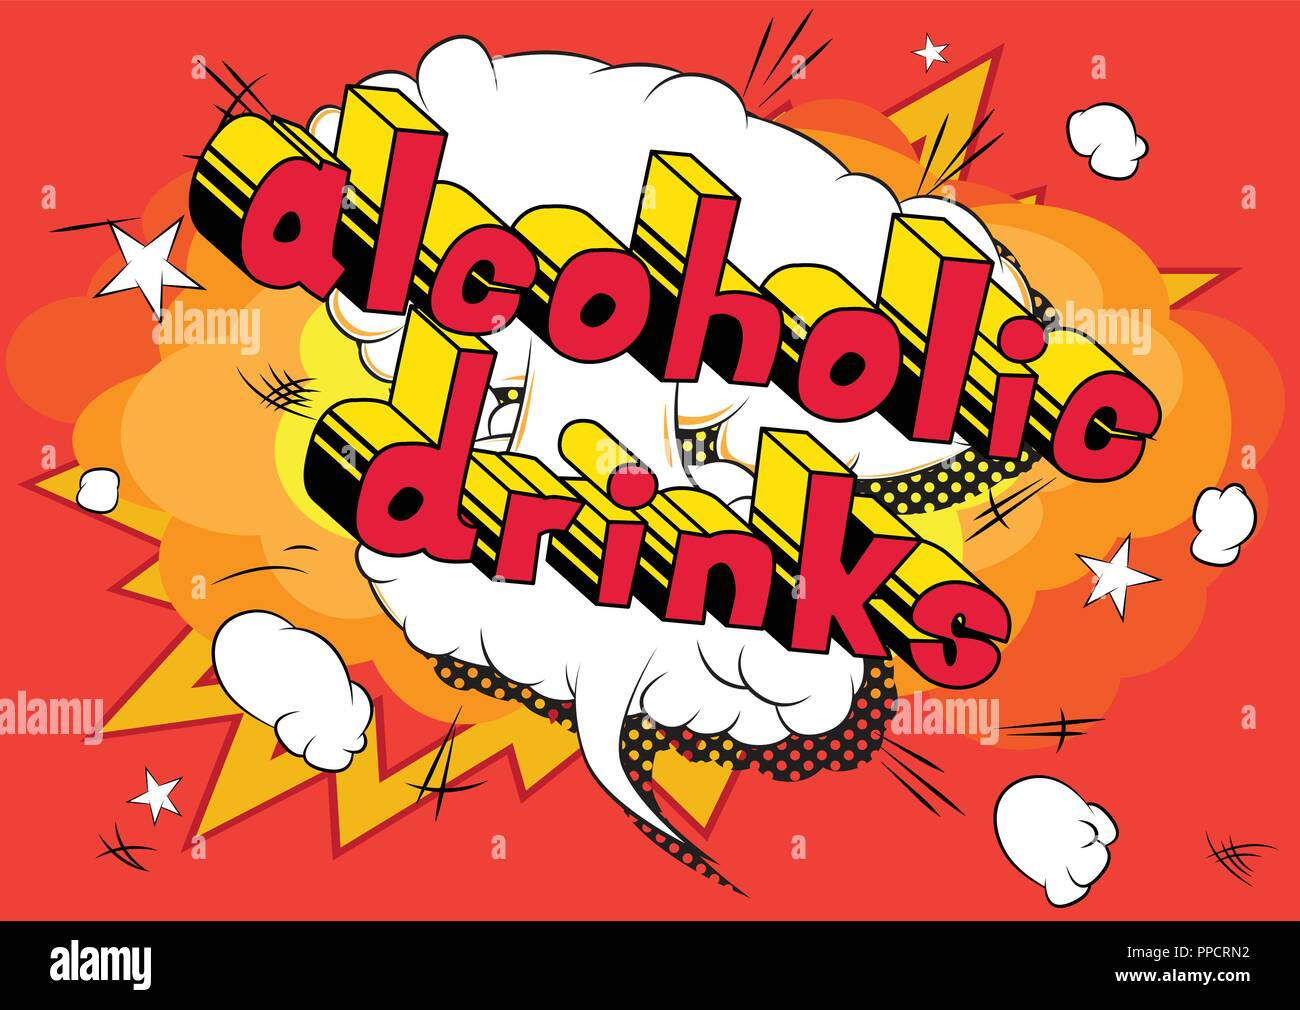 Alcoholic drinks - Vector illustrated comic book style phrase. Stock Vector